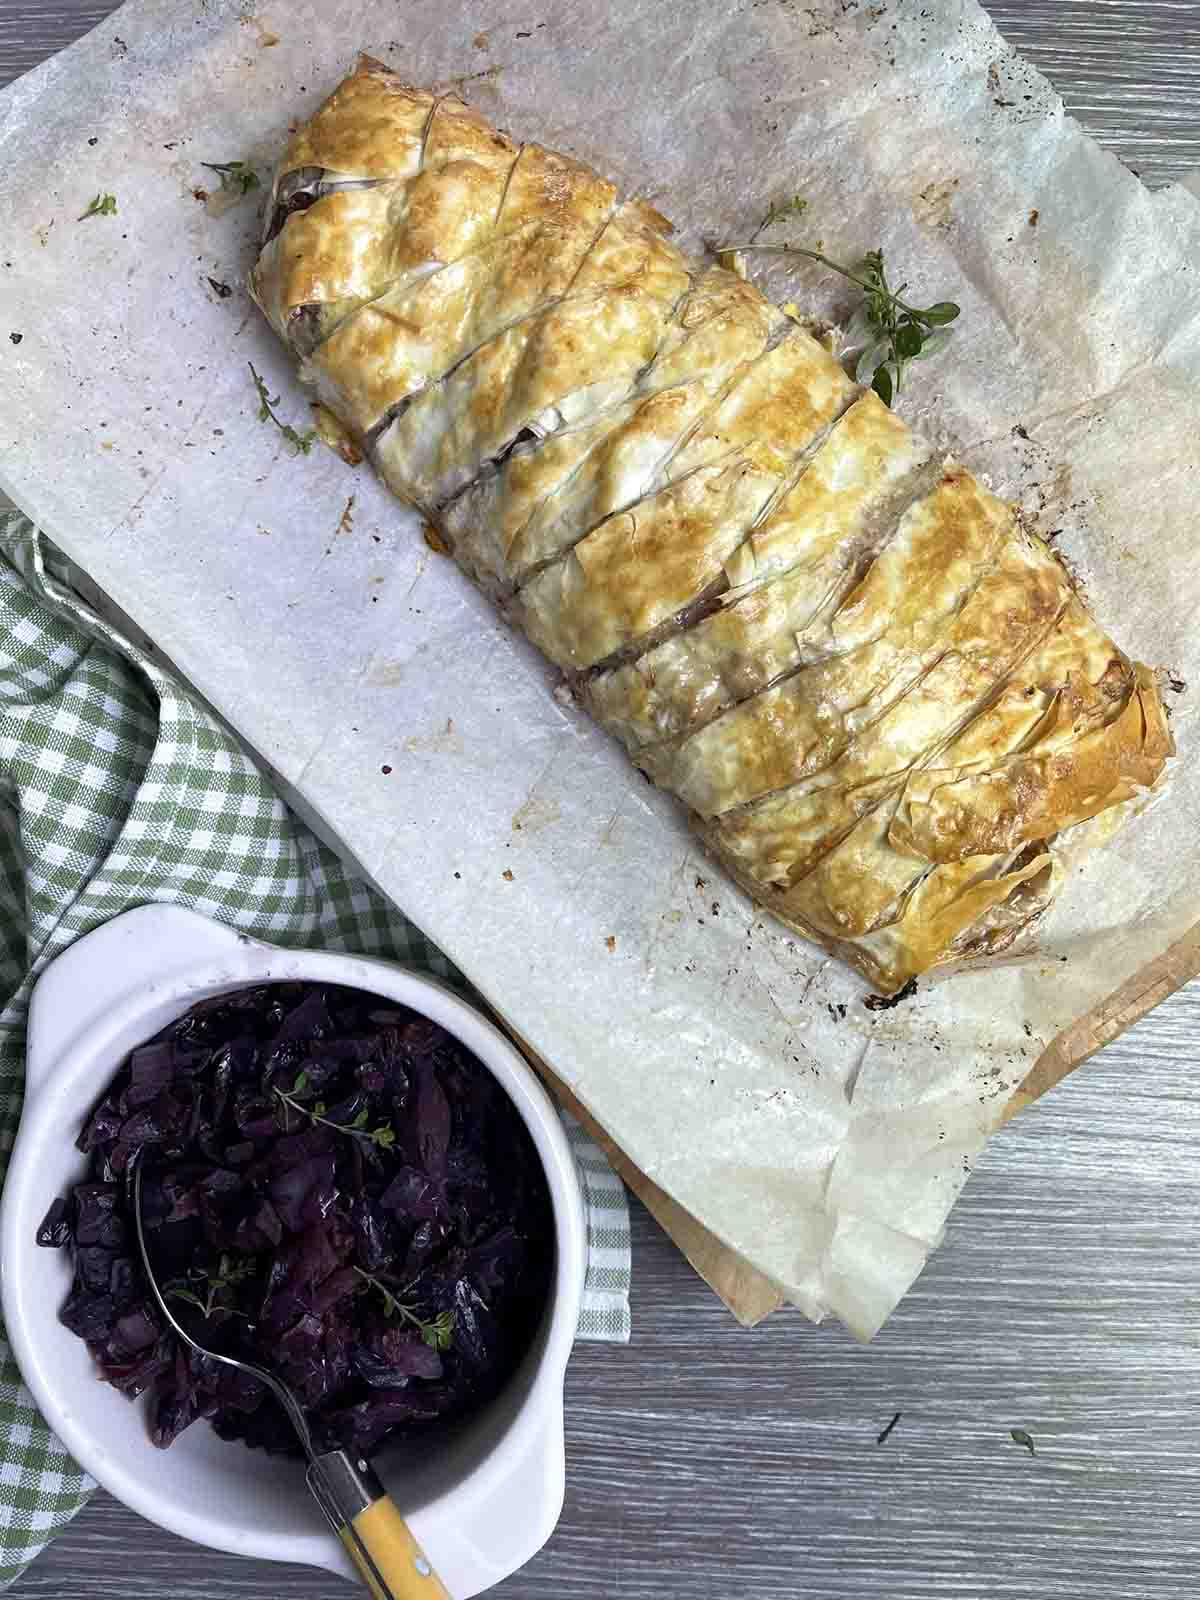 cooked venison sausage plait with a pot of red cabbage to the side.